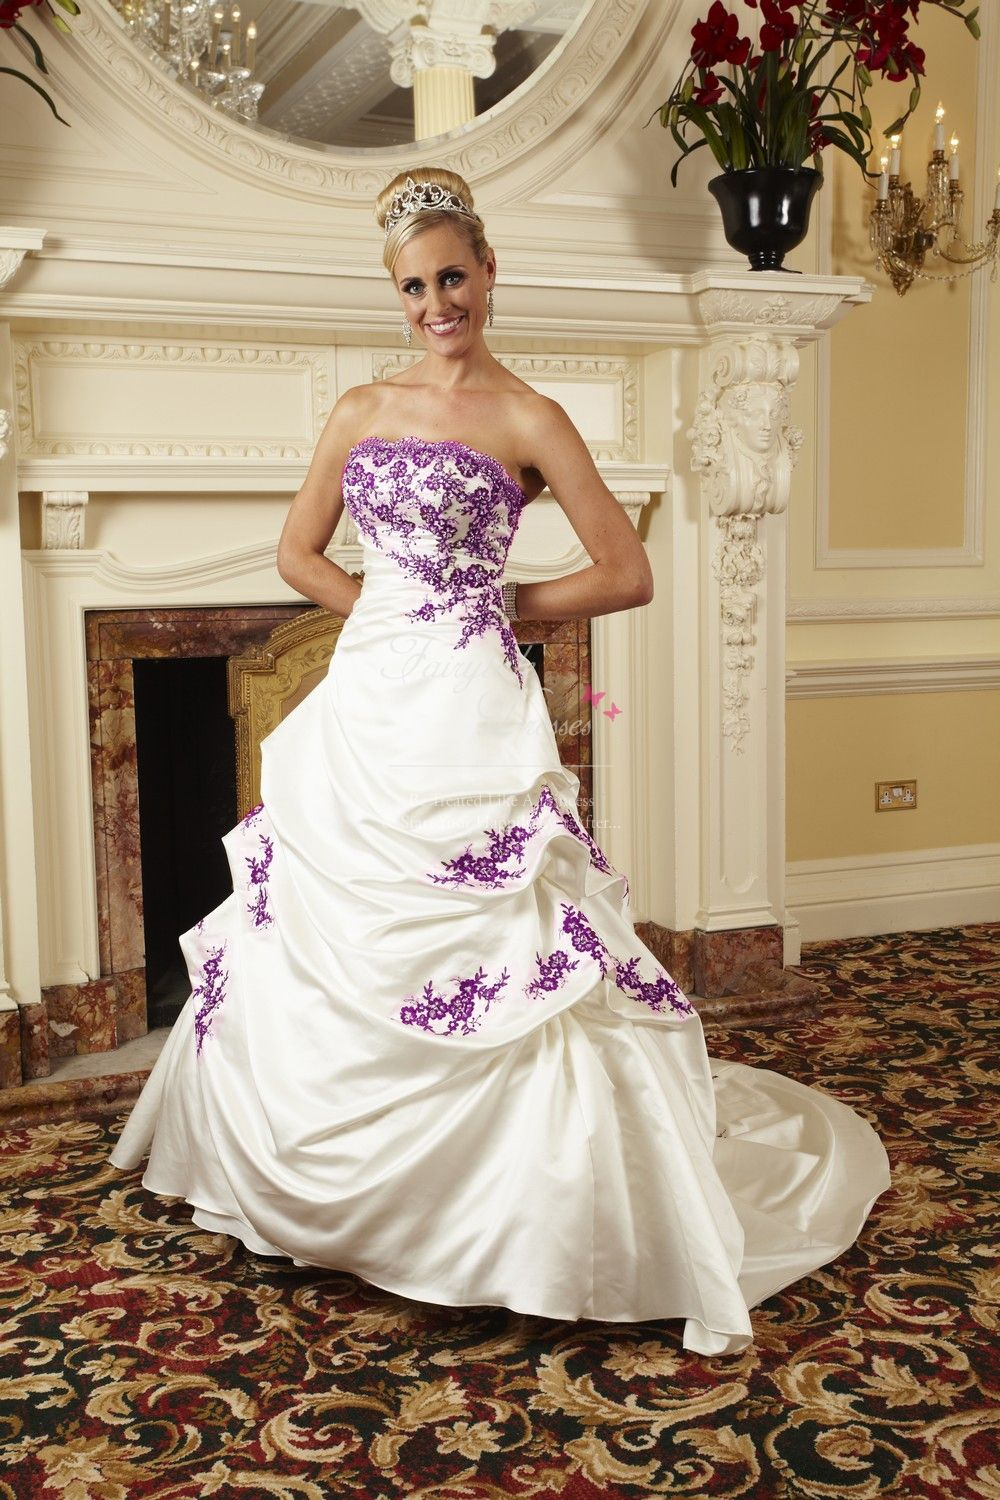 can you see this bride walking on the beach over a purple